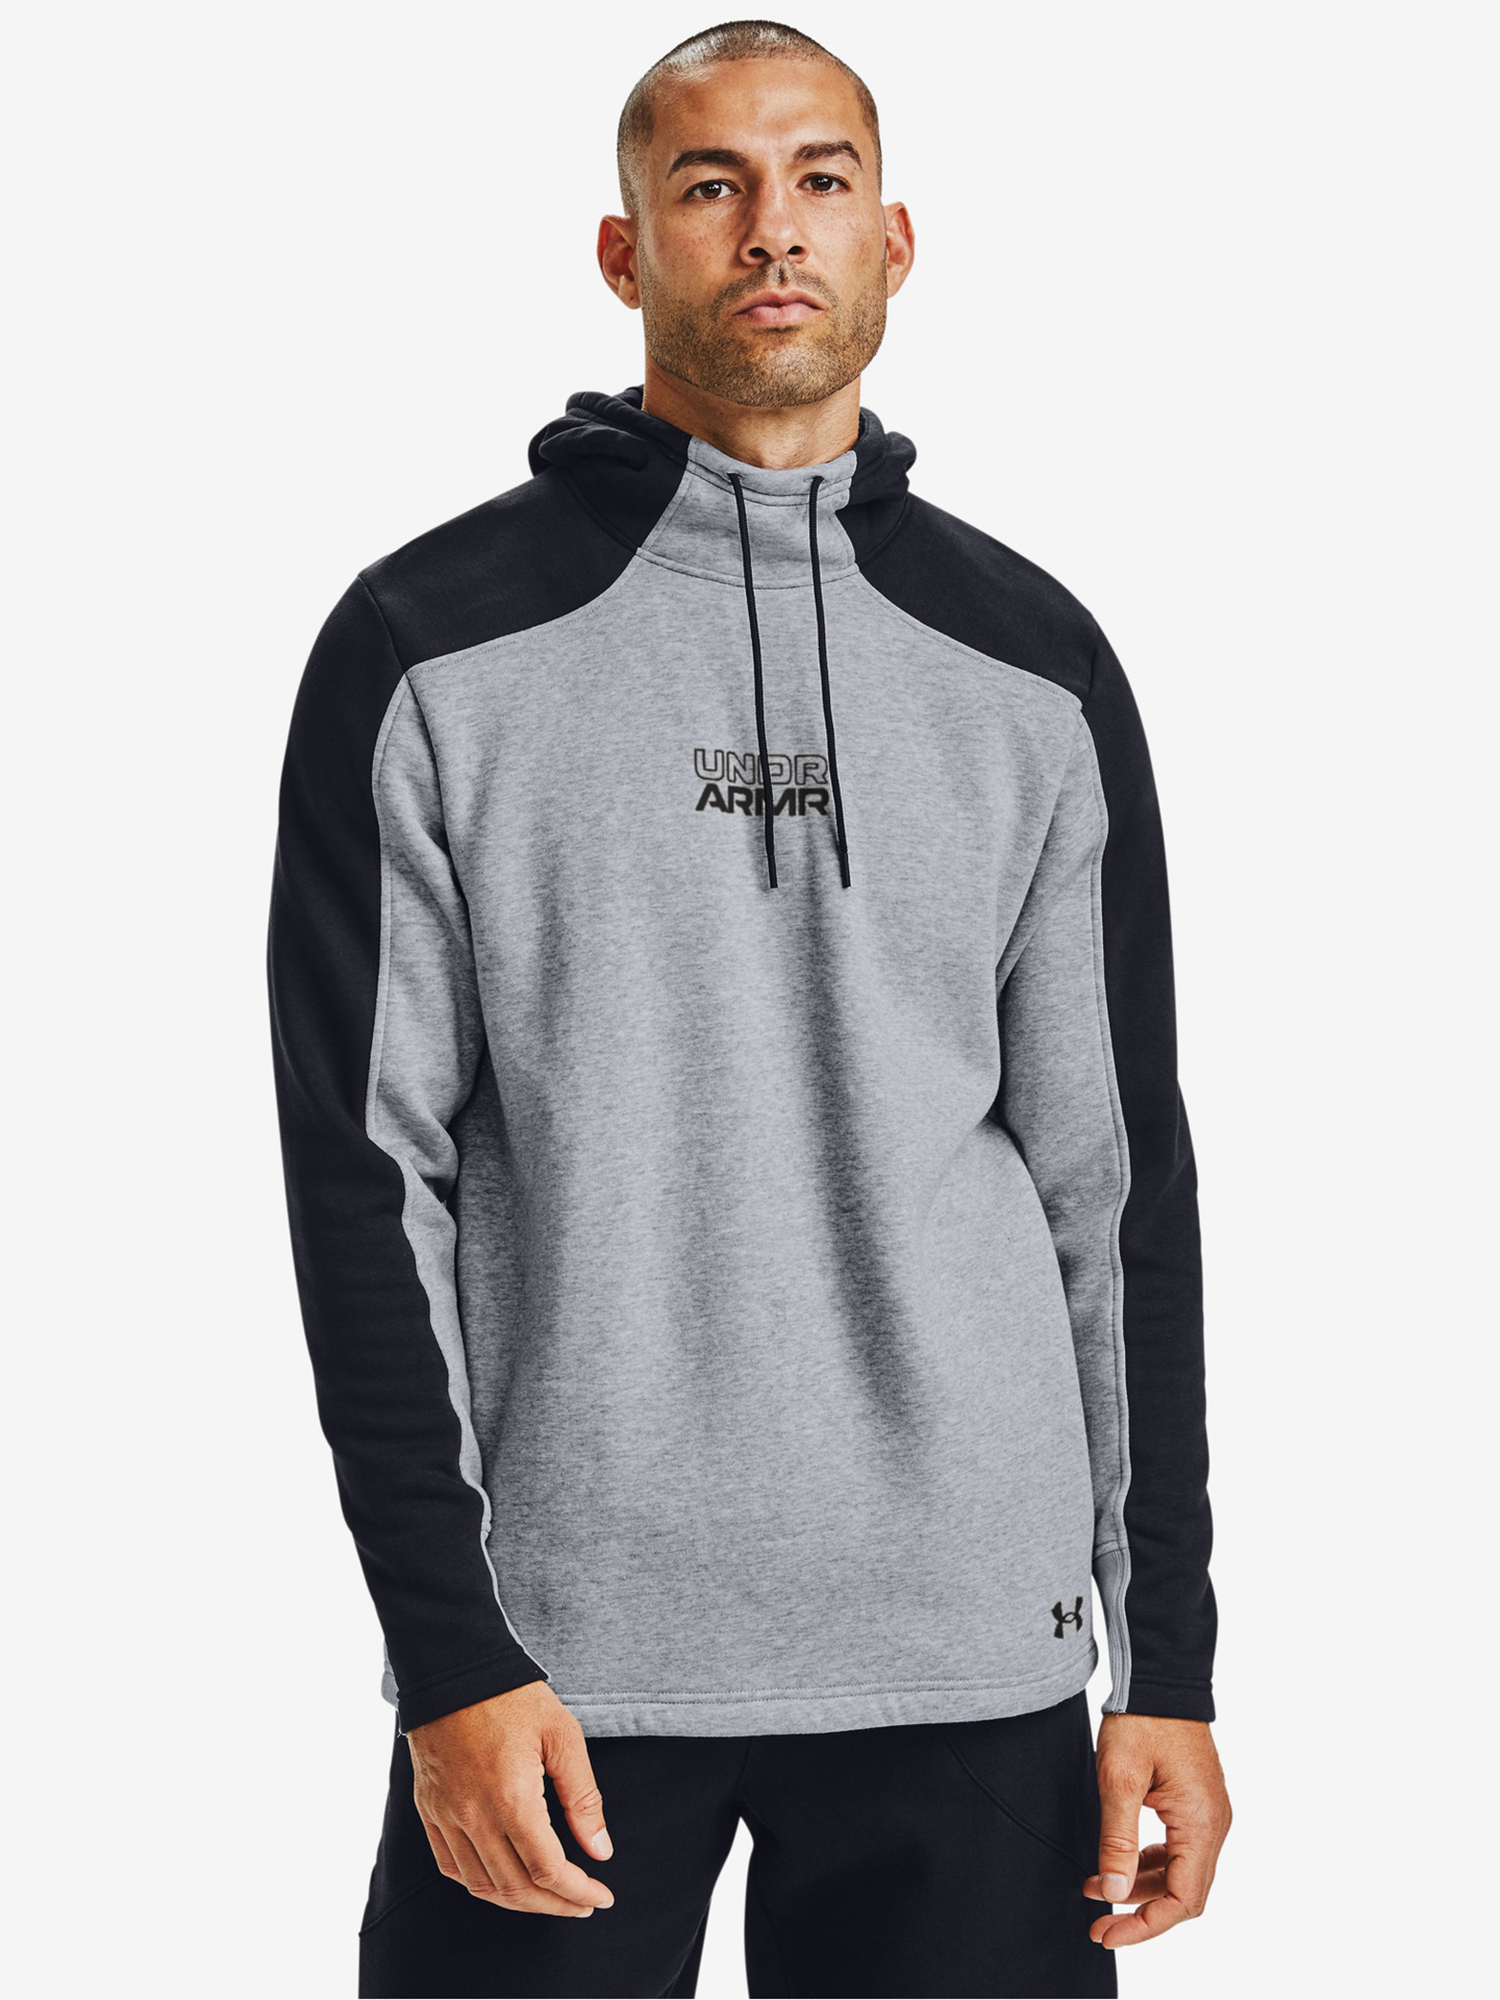 Baseline Fleece Mikina Under Armour Šedá